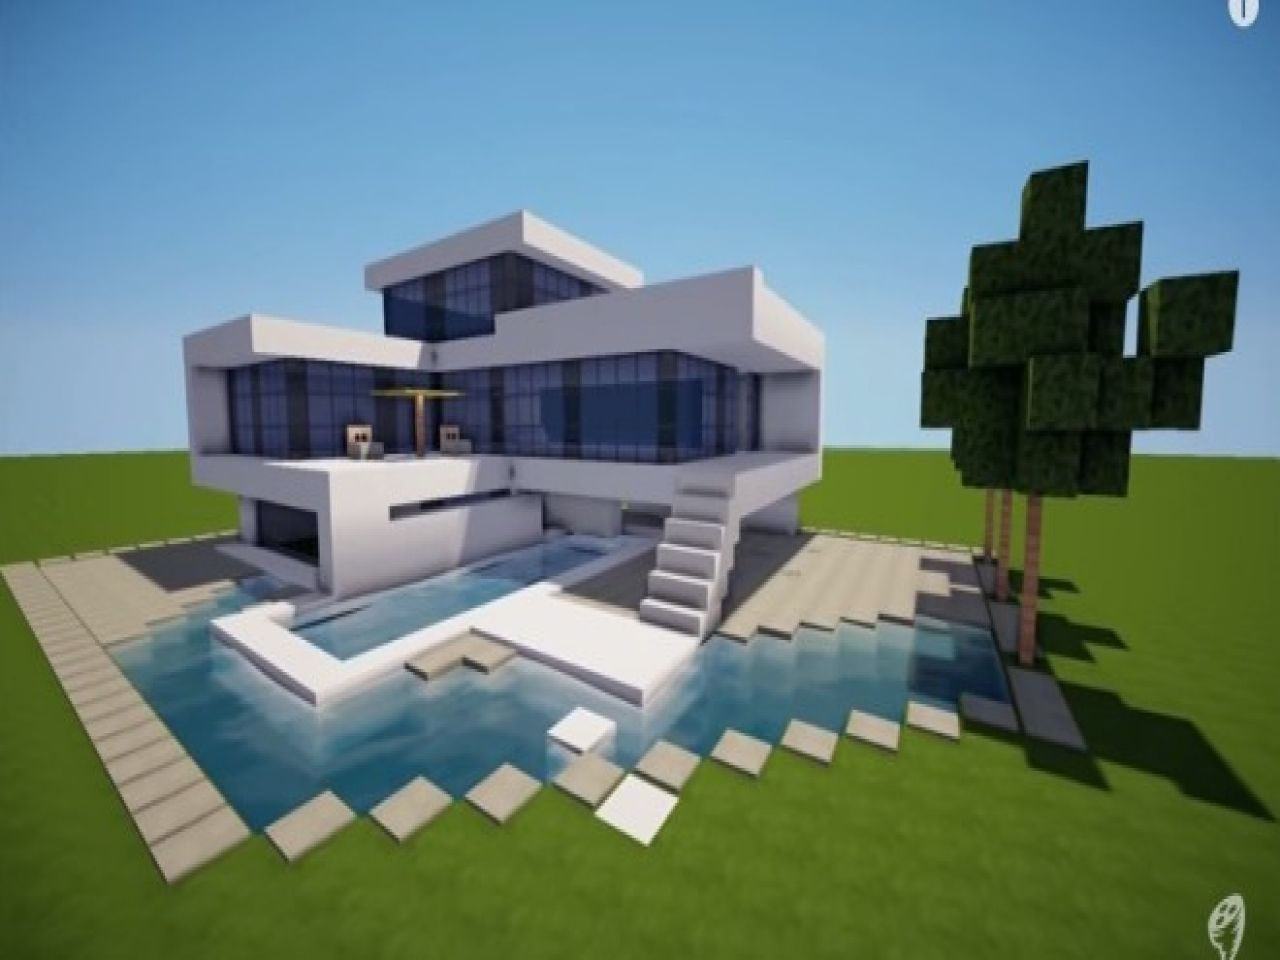 How to build a modern house in minecraft beanonaboard